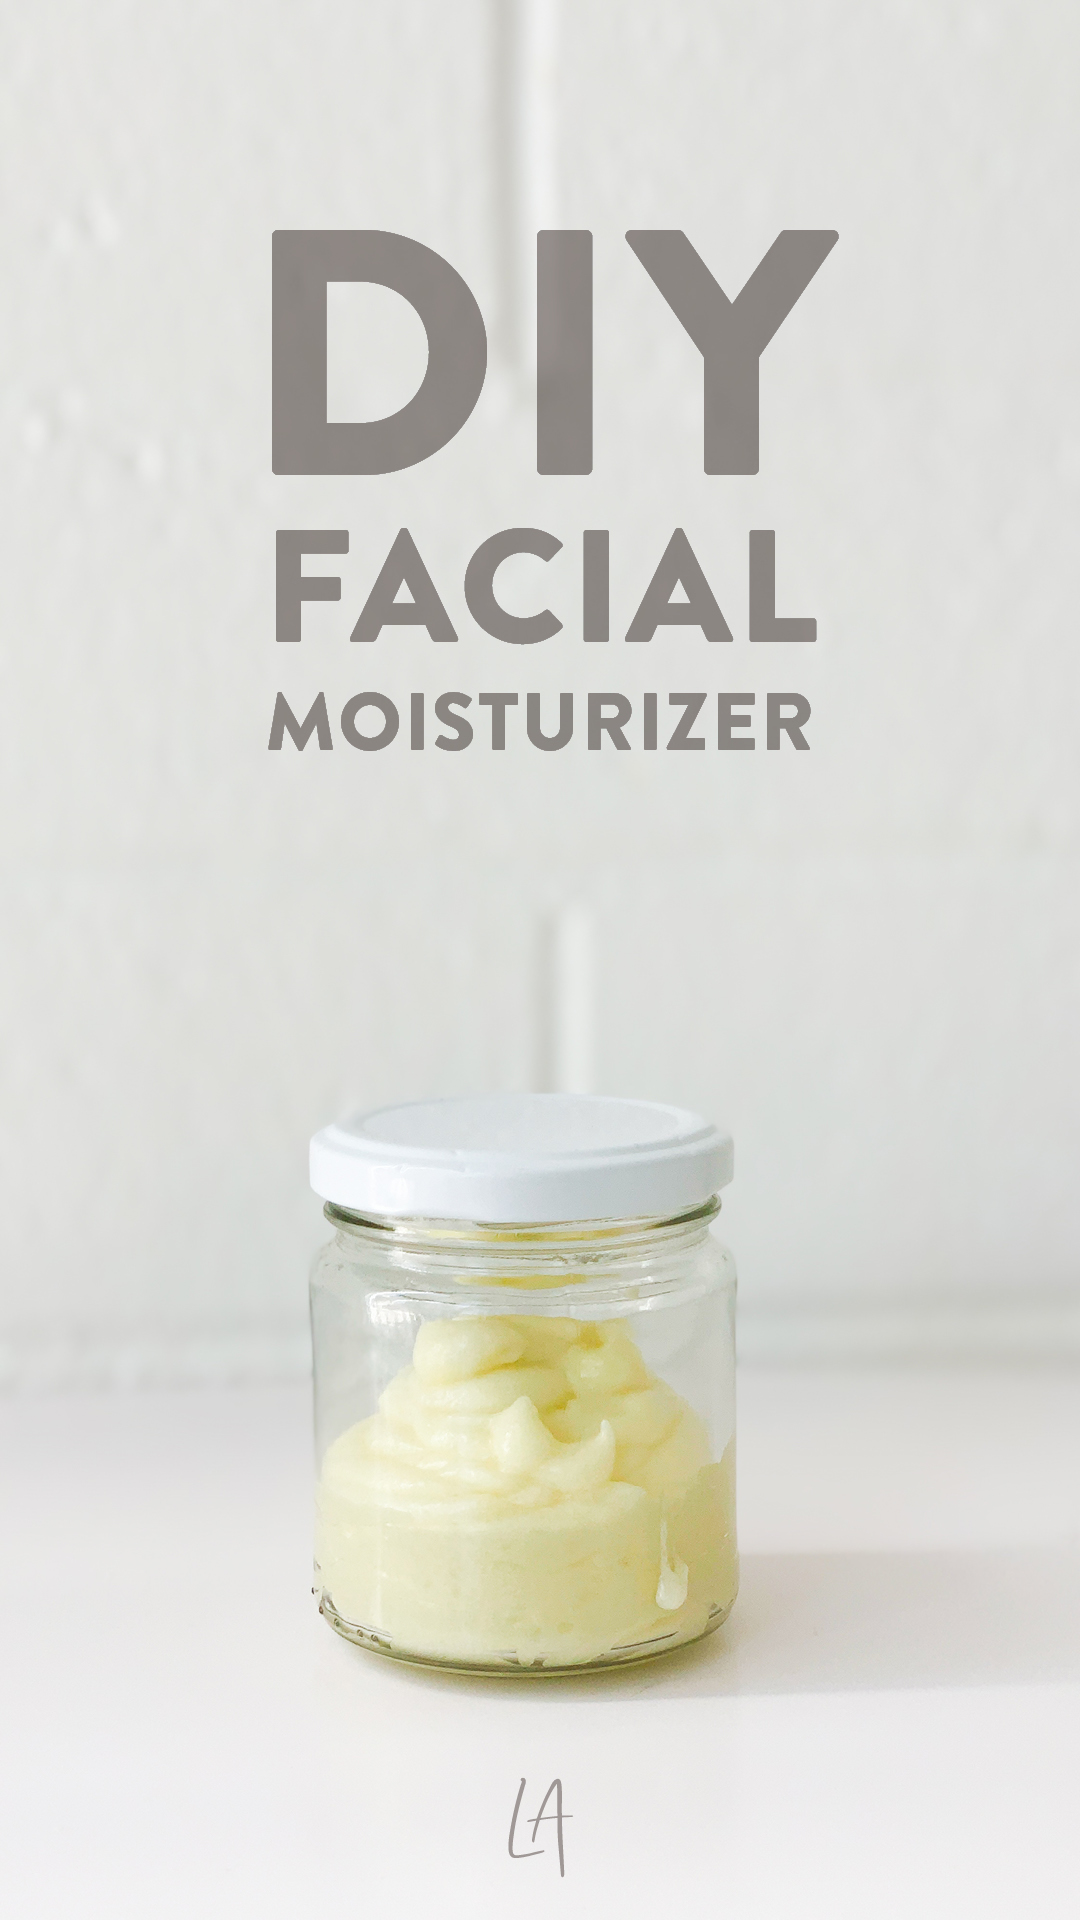 DIY facial moisturizer recipe